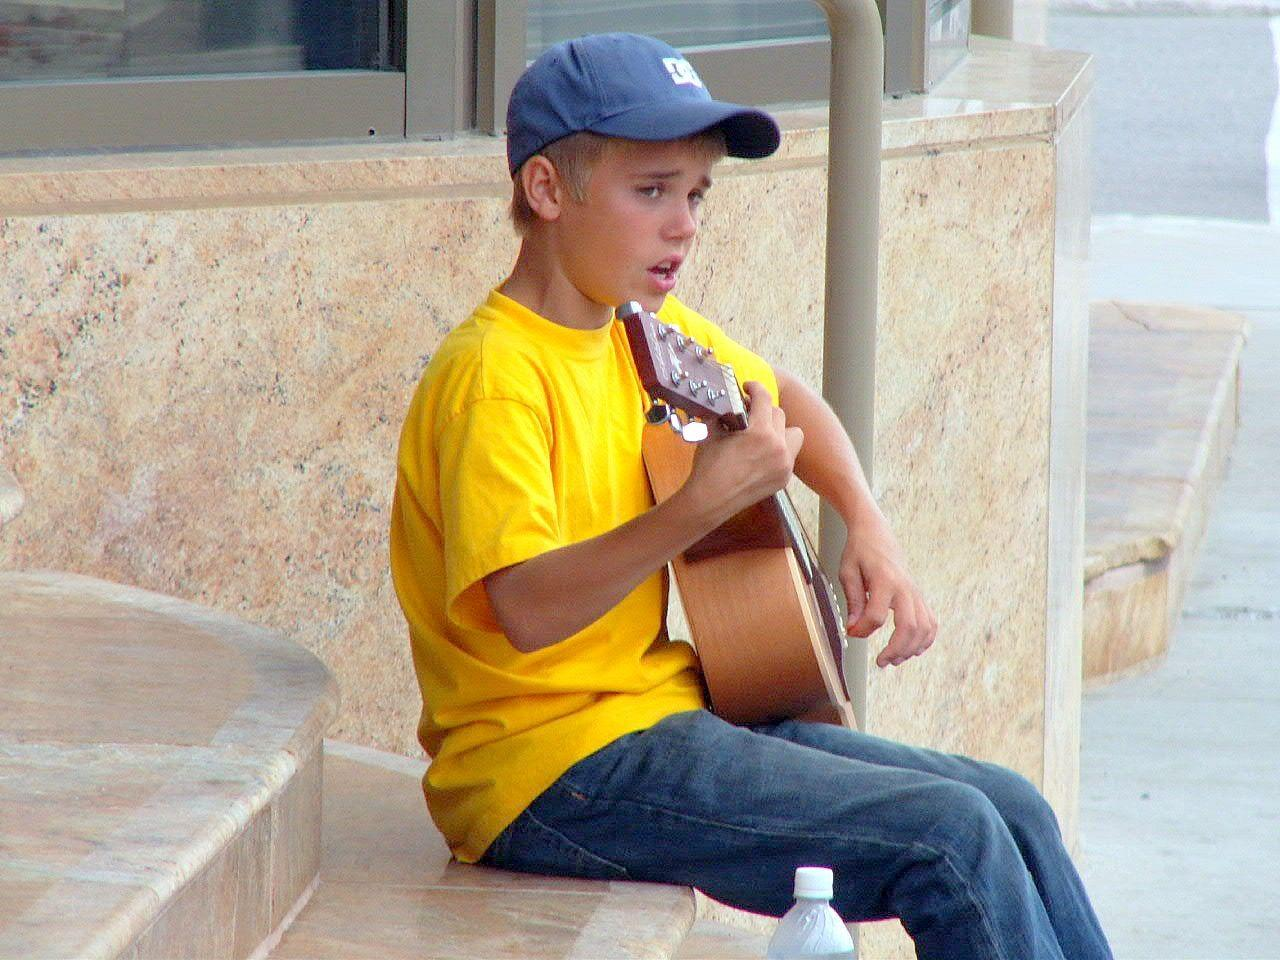 "<p>Born in Ontario, Canada on March 1, 1994, Justin Bieber got his <a href=""https://abcnews.go.com/GMA/Weekend/teen-pop-star-justin-bieber-discovered-youtube/story?id=9068403"" target=""_blank"">big break</a> in 2008 after a video he posted to YouTube caught the attention of manager Scooter Braun and superstar singer, Usher Raymond, who signed him to their record company.</p>"